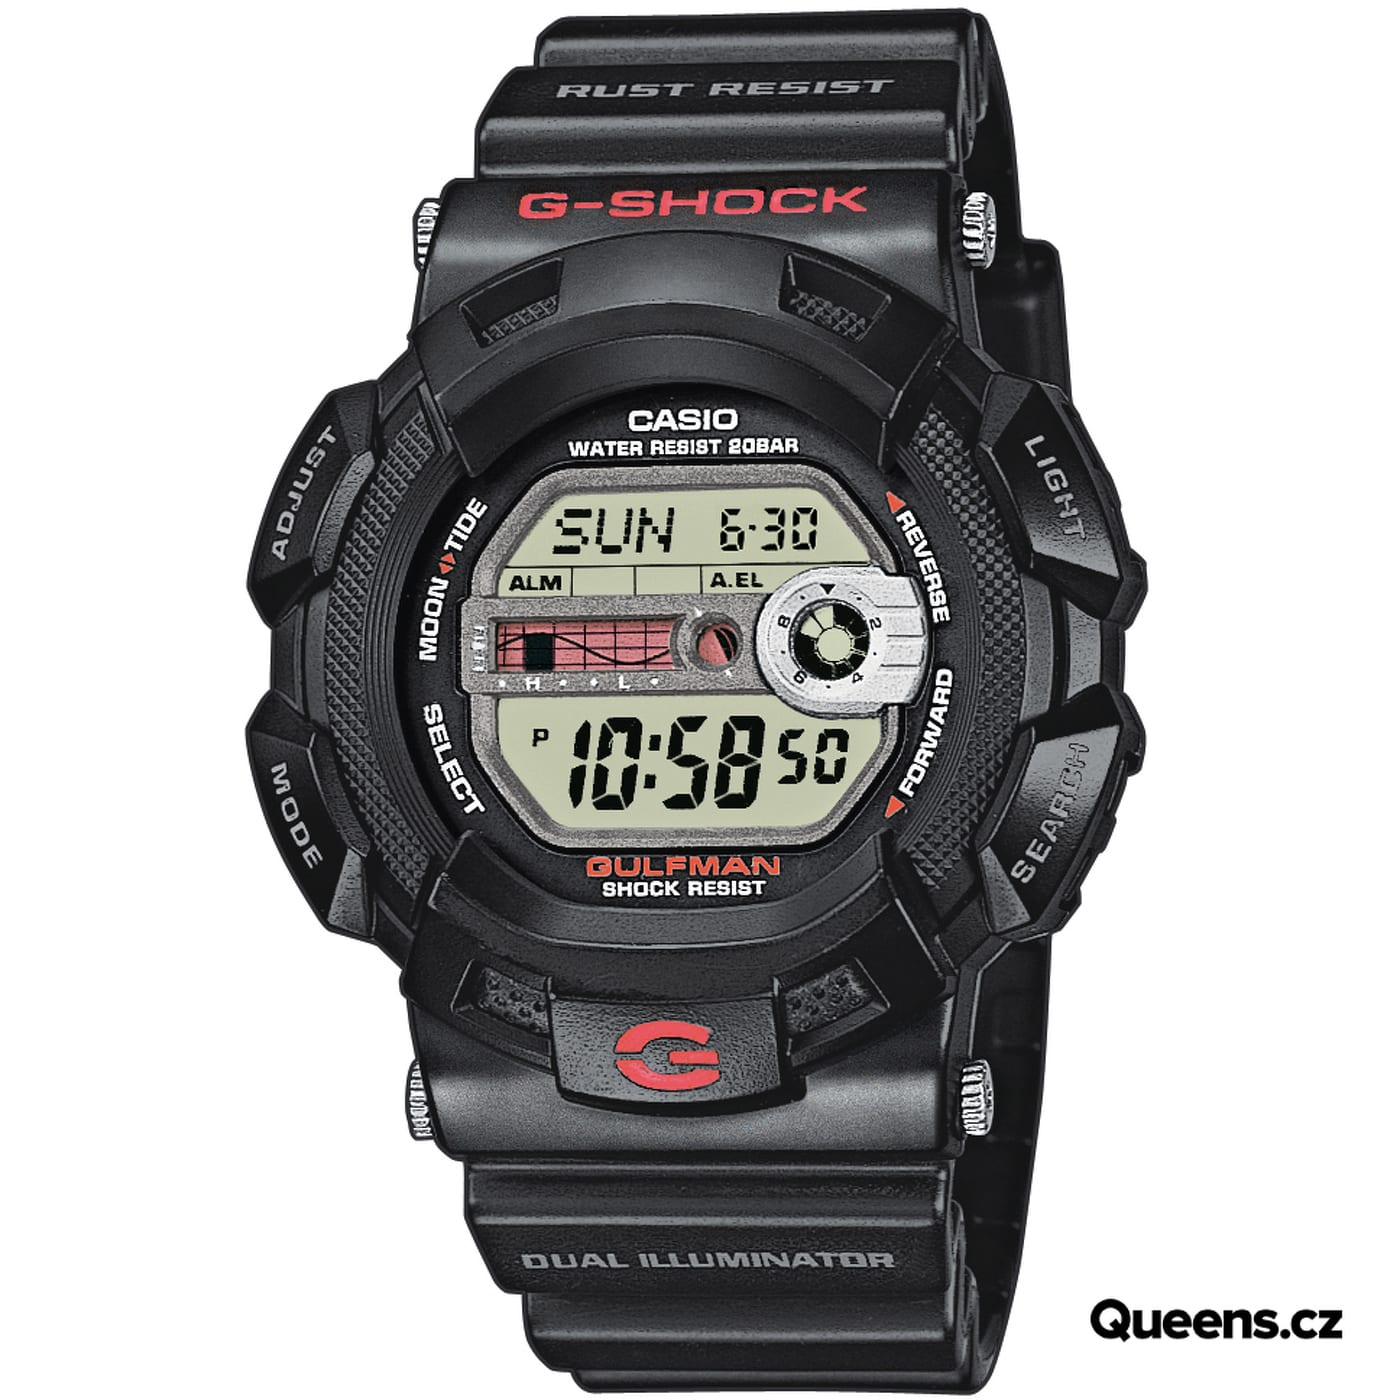 Casio G-Shock G 9100-1 black